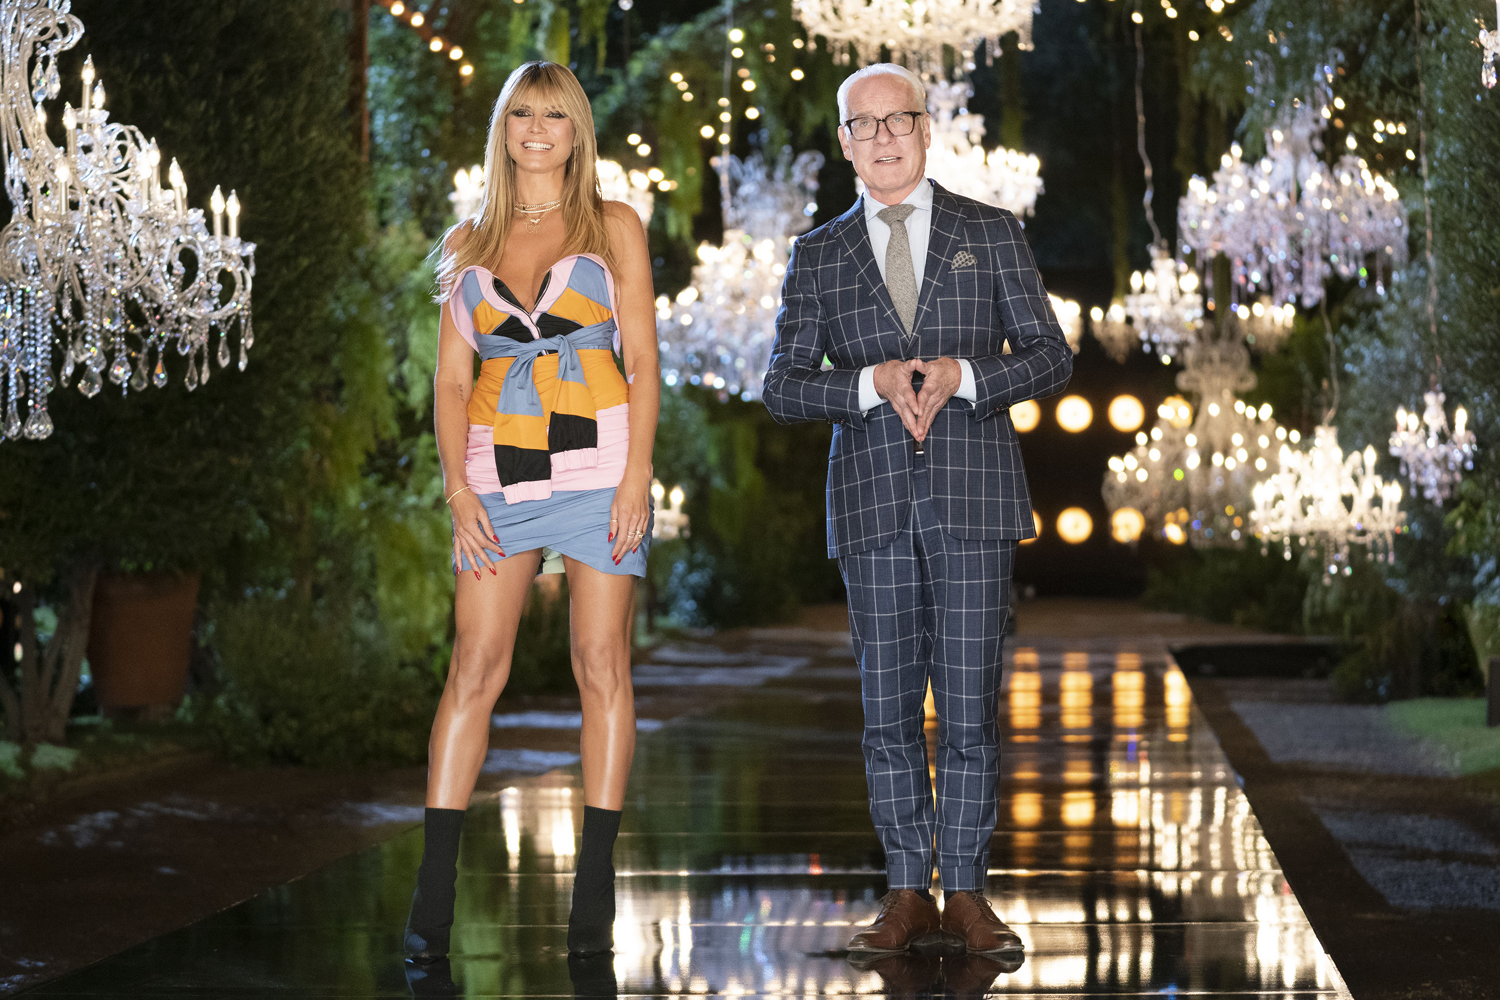 Tim Gunn on how Making the Cut can launch a global fashion brand in a changing industry